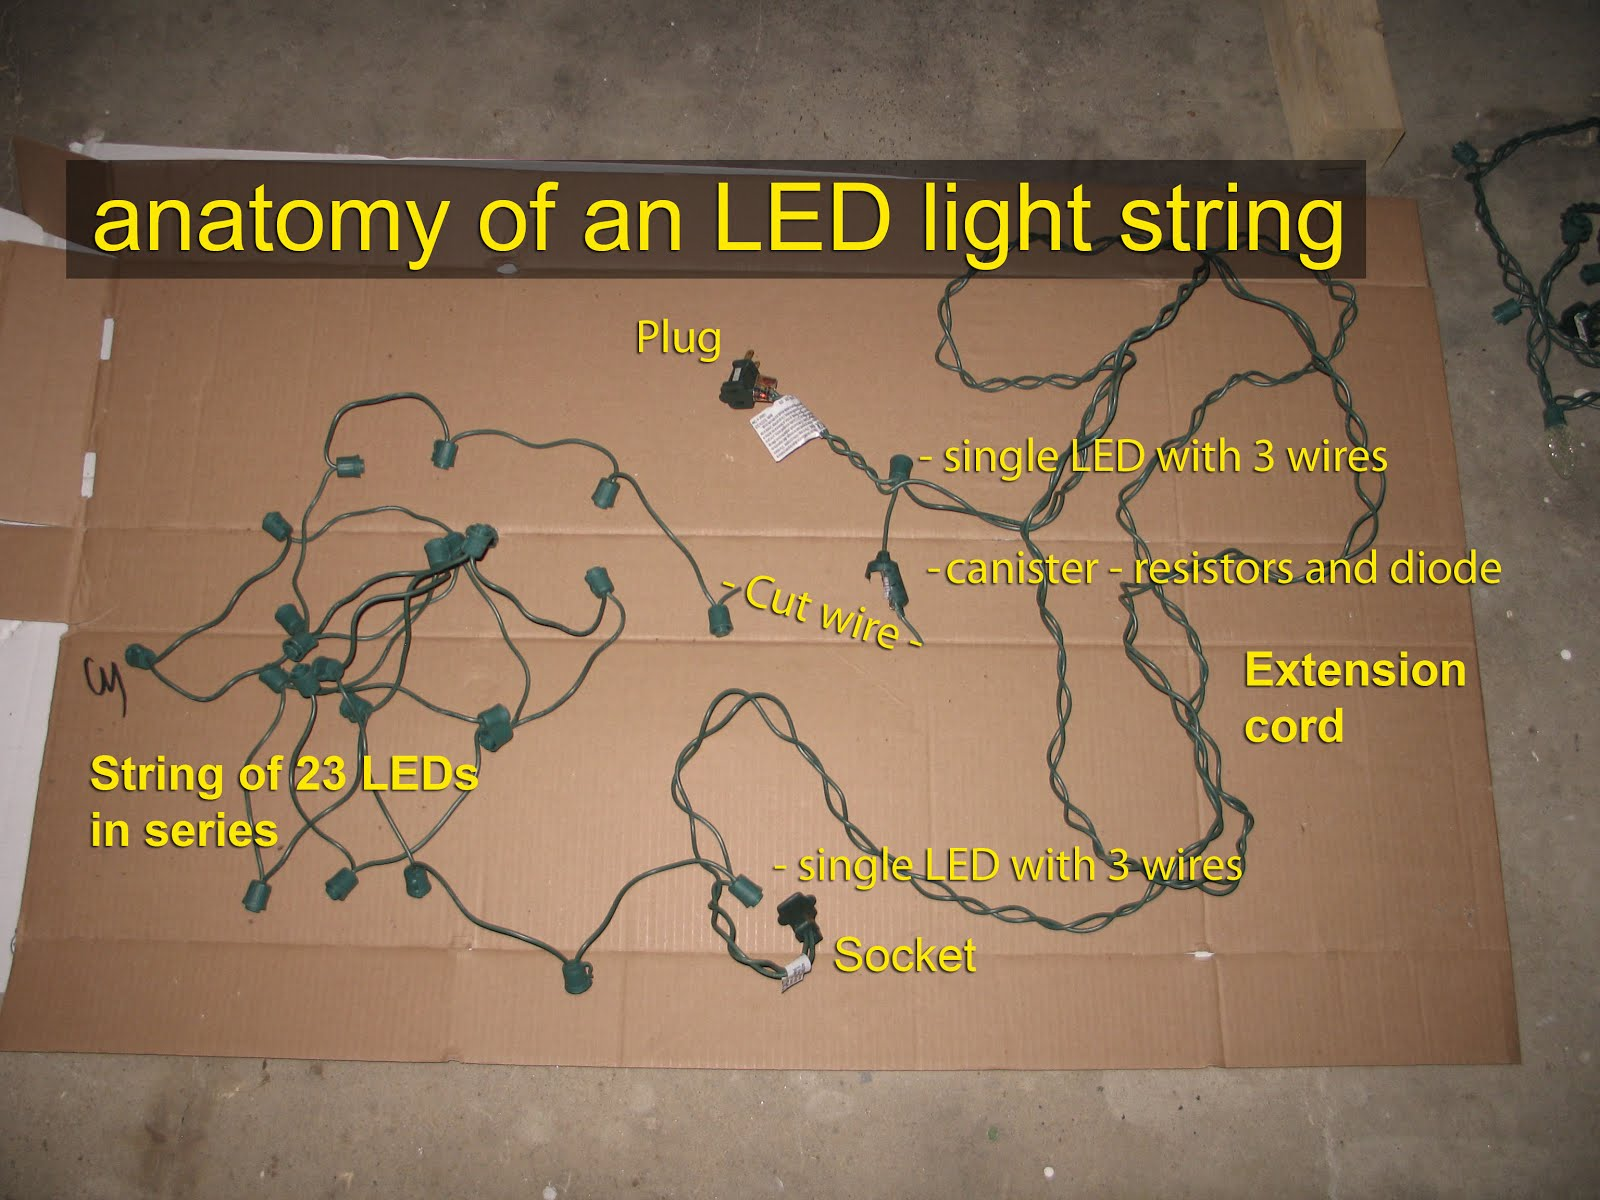 led light string anatomy1 georgesworkshop fixing led string lights wiring diagram for led light string at creativeand.co